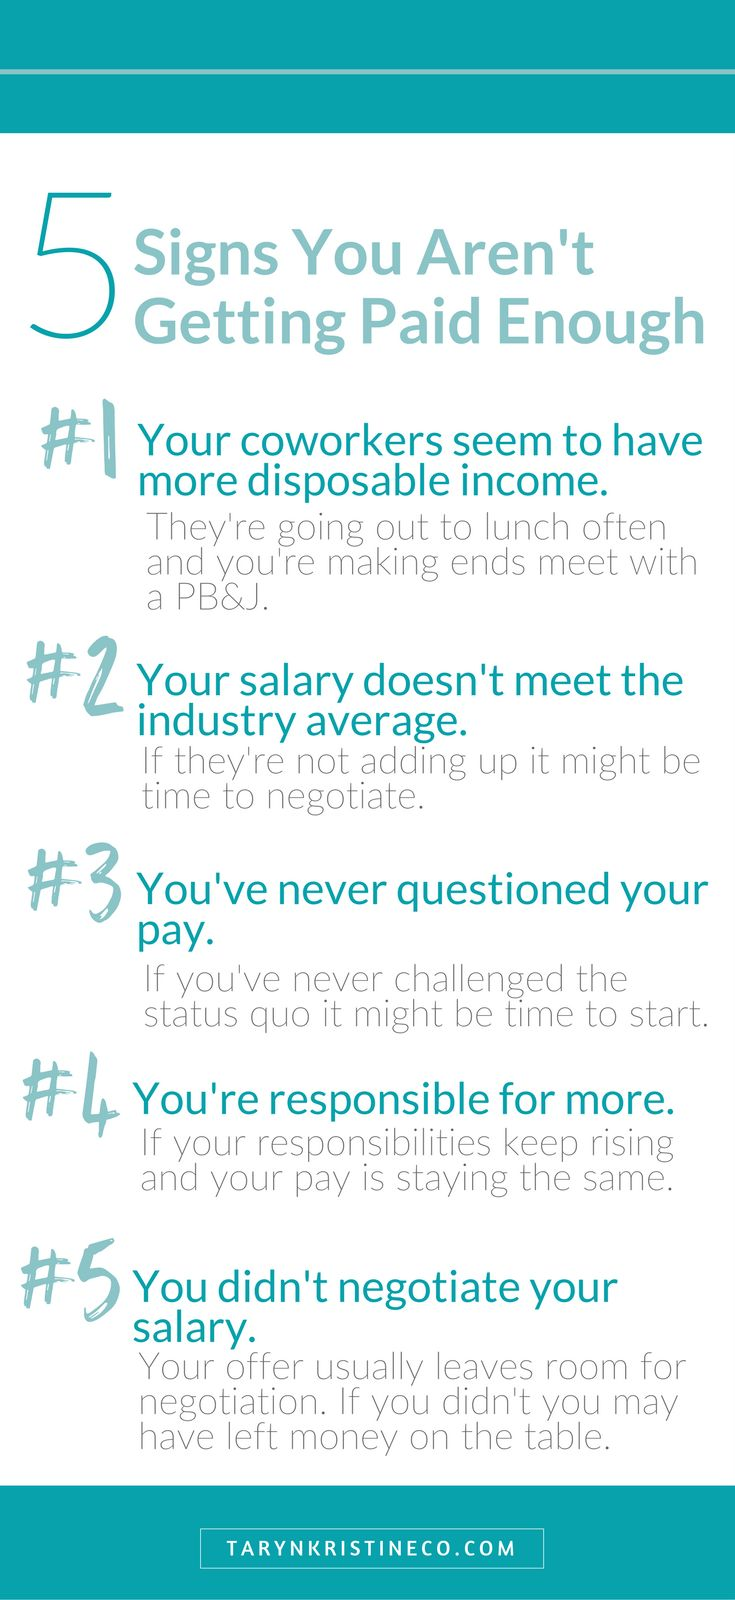 128 best images about TK+CO on Pinterest | Job search tips ...